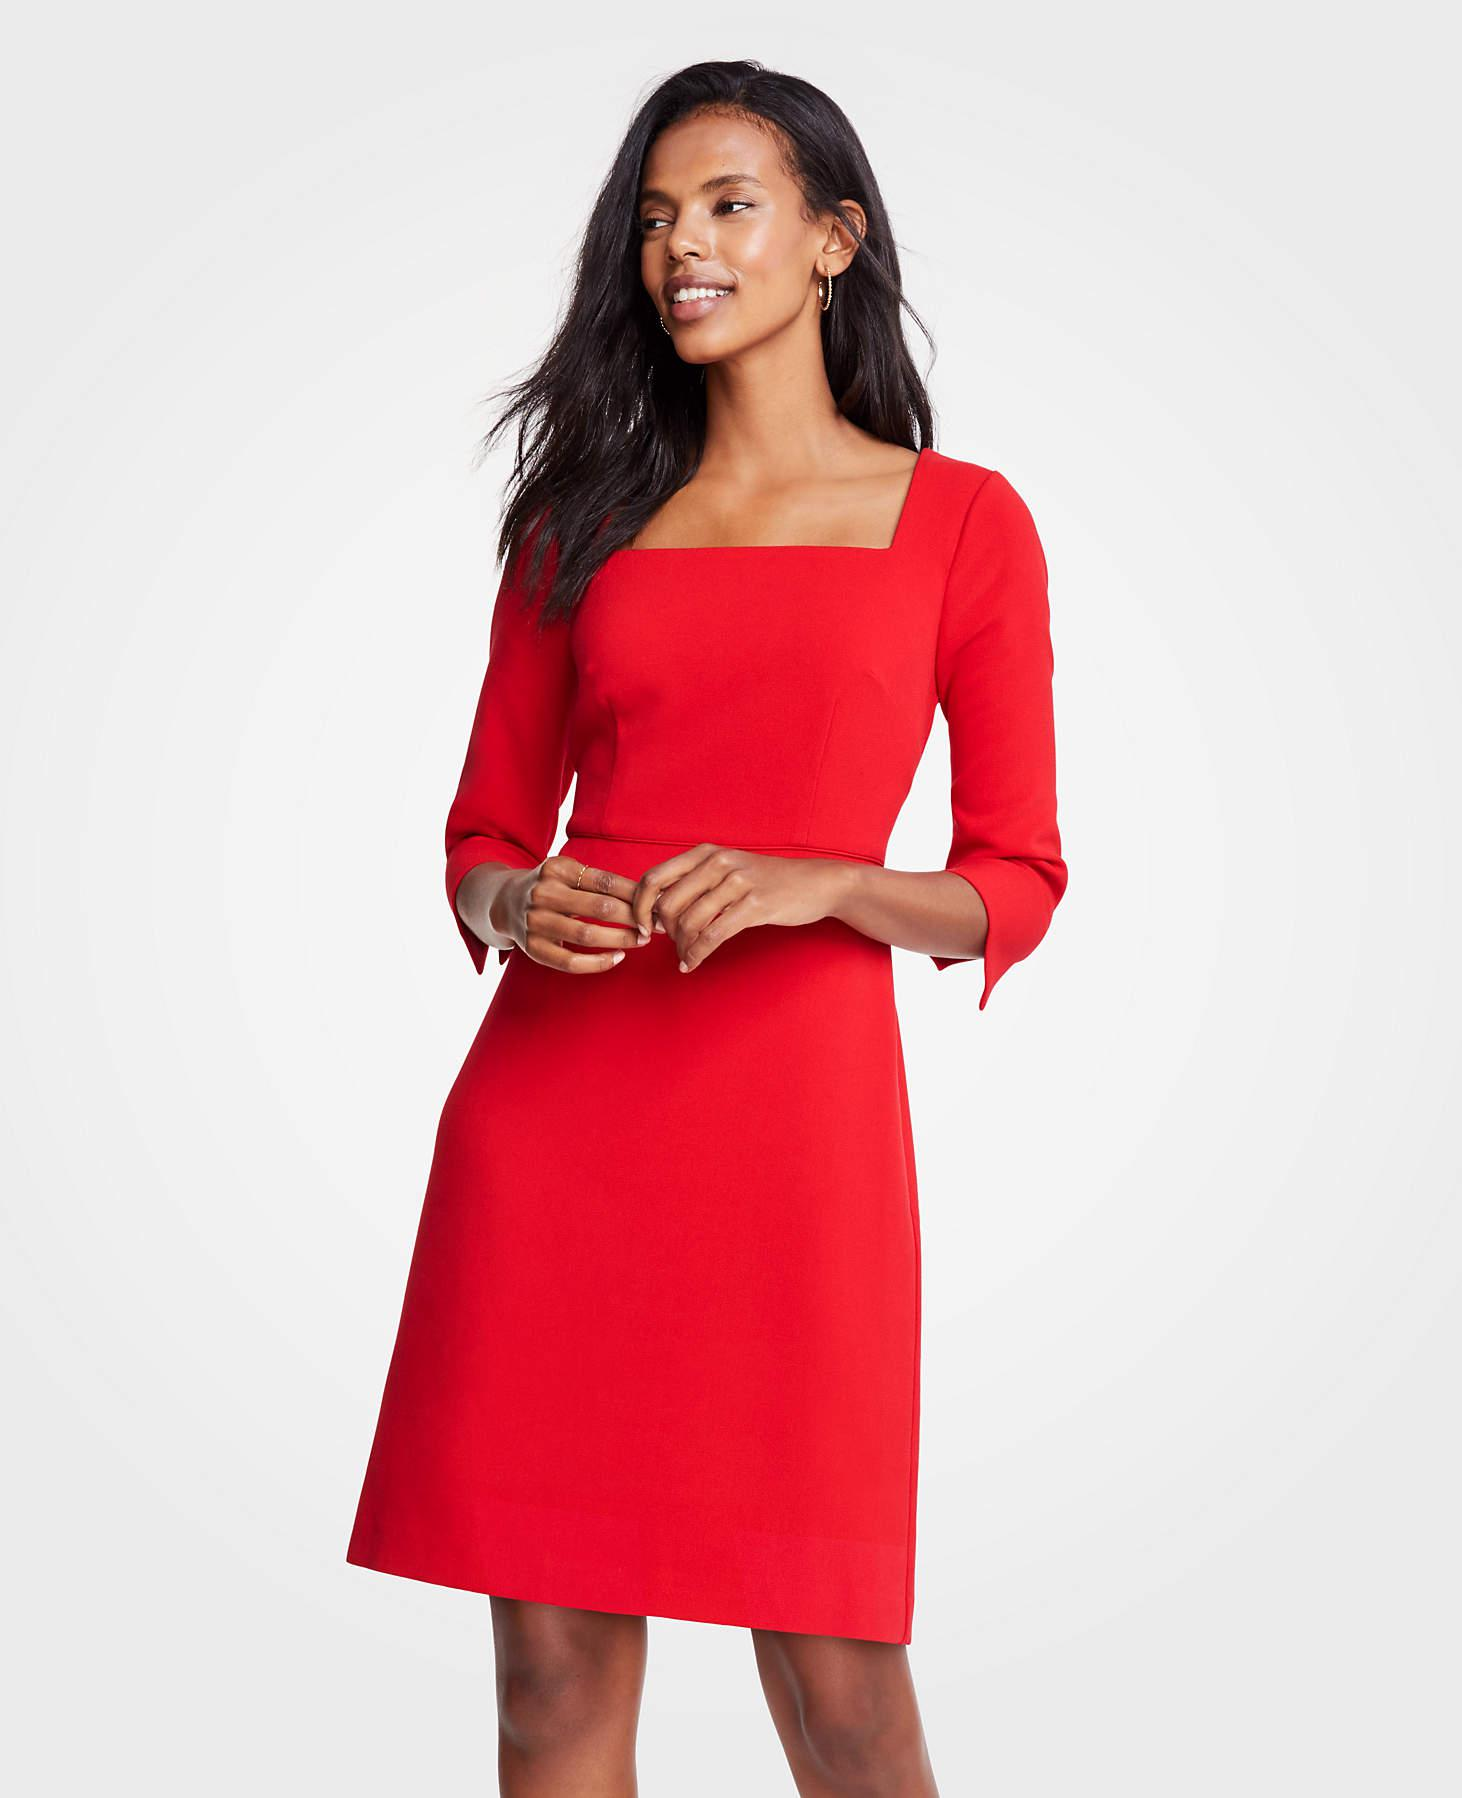 86681158ac Lyst - Ann Taylor Tall Doubleweave Square Neck Flare Dress in Red